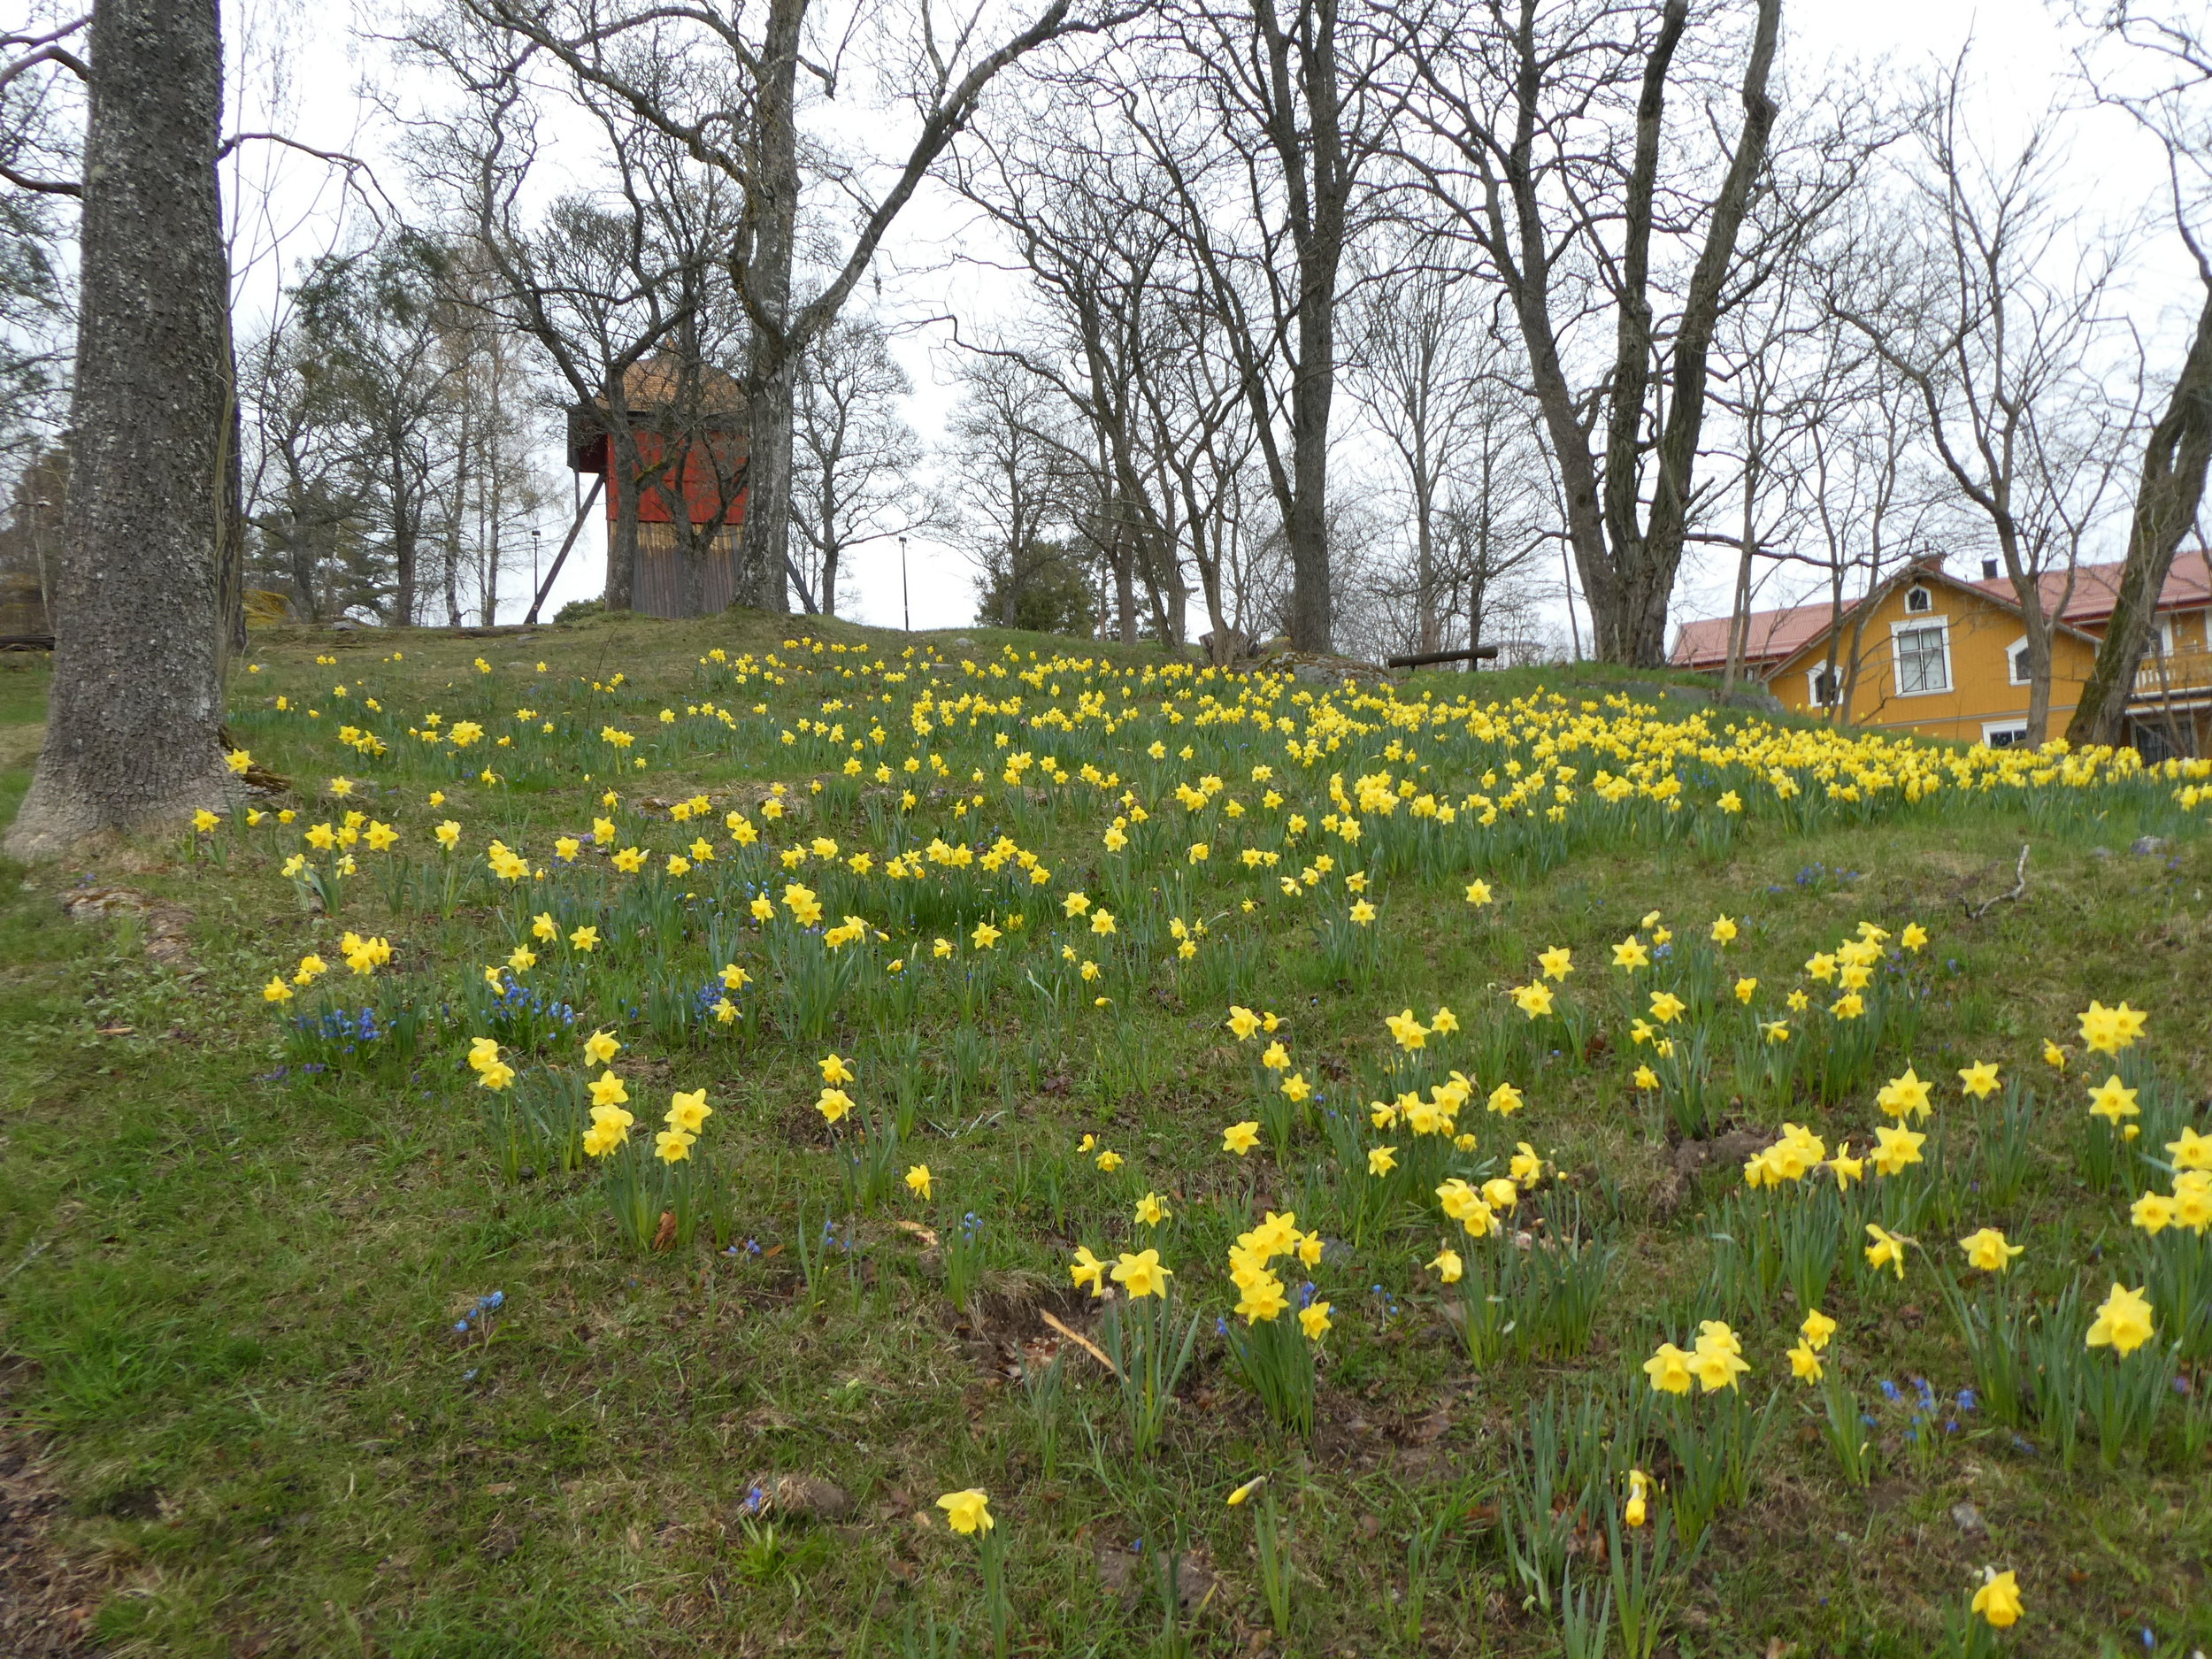 Daffodils in Sigtuna. They seem to grow everywhere.